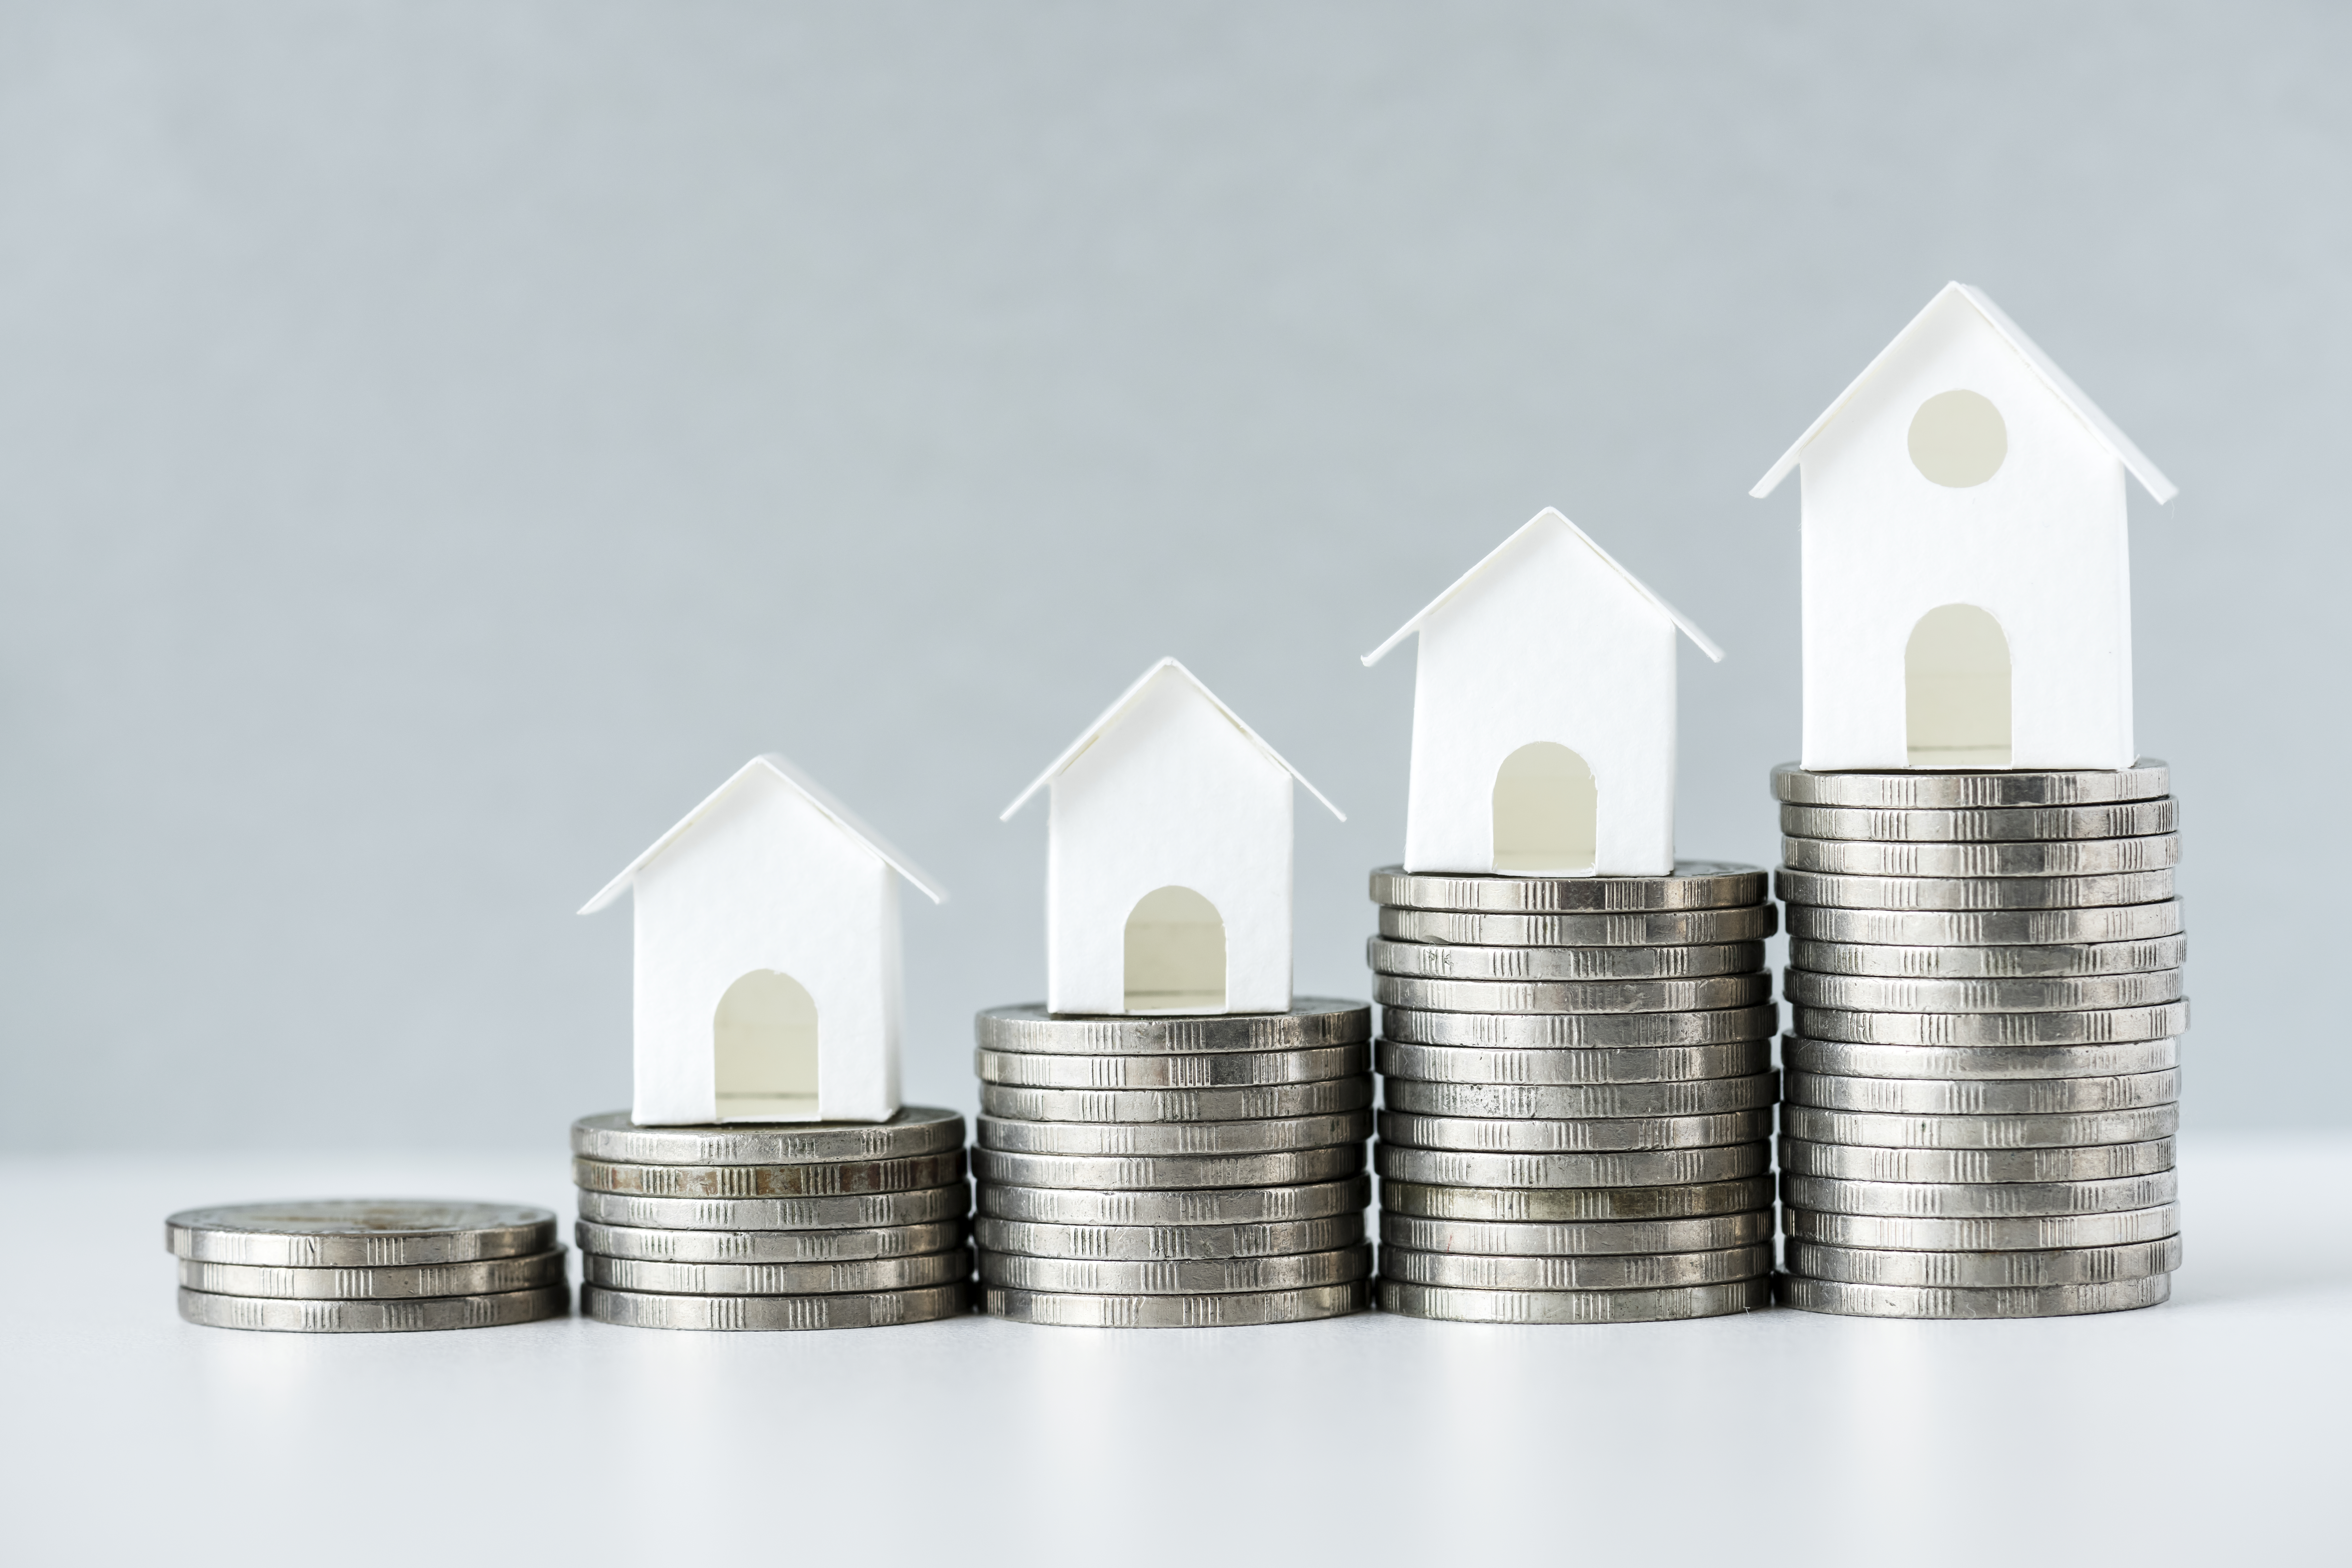 30 days to pay capital gains tax on property